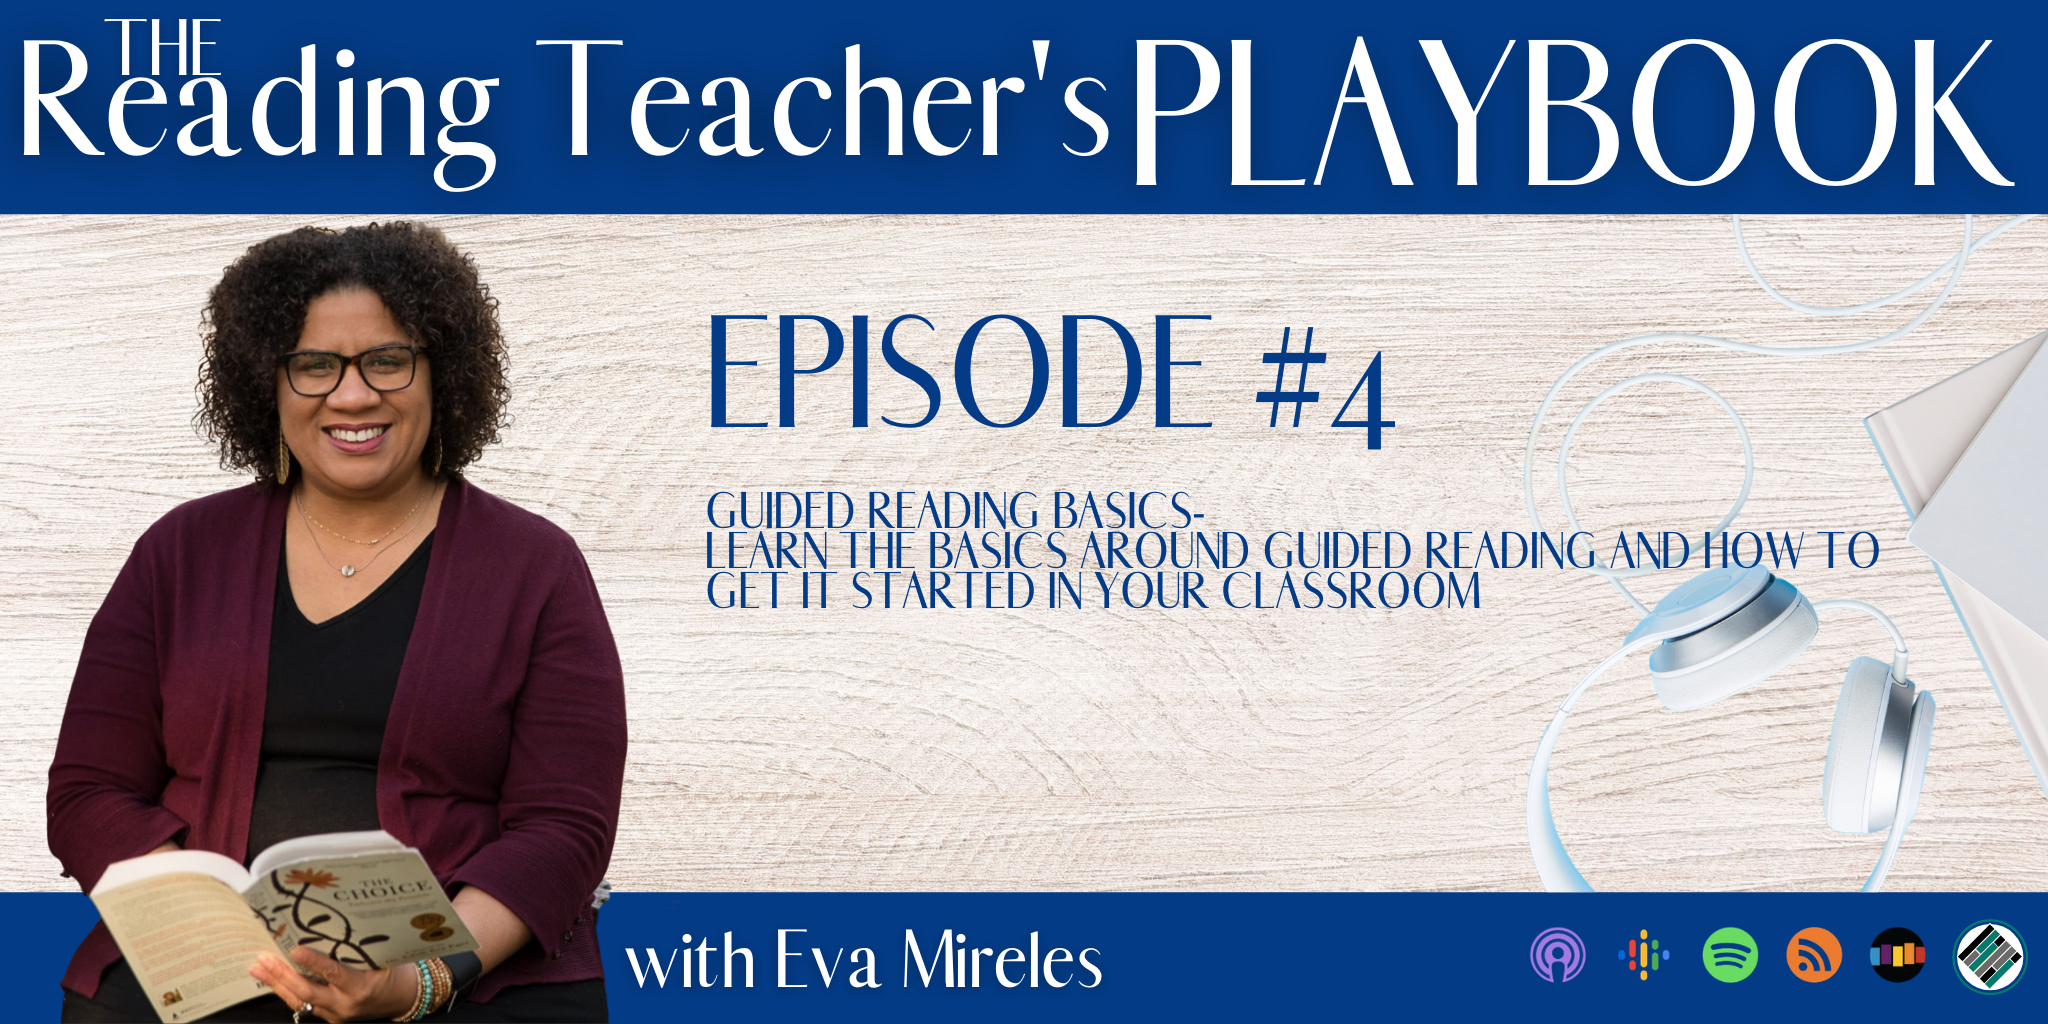 The-Reading-Teacher's-Playbook-Guided-Reading-Basics-Ep4